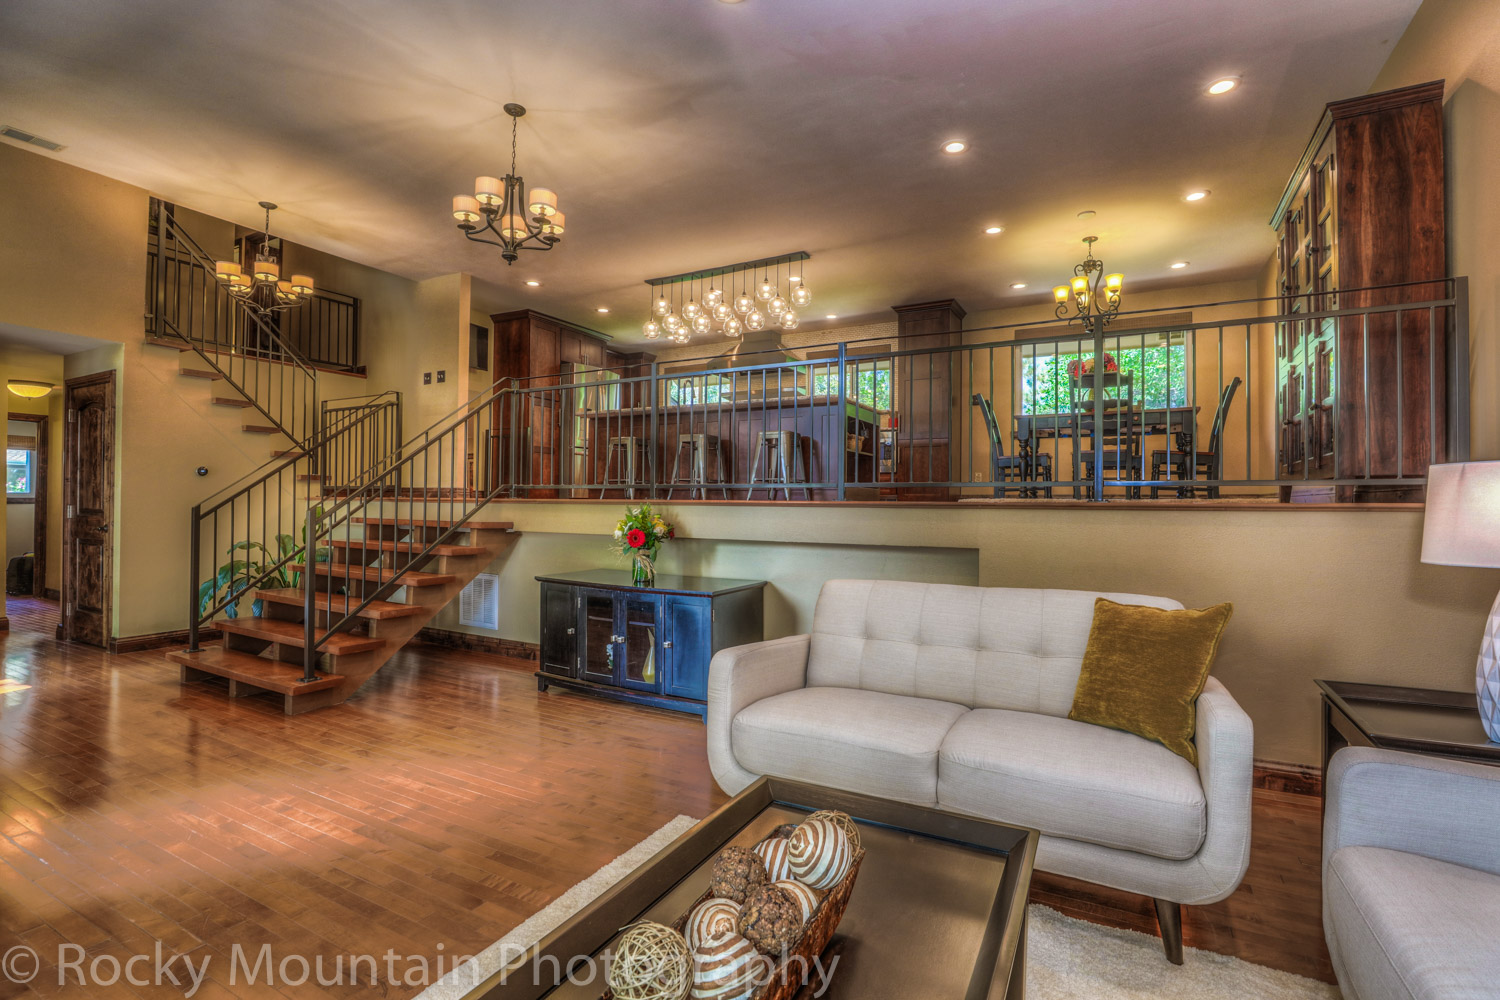 Residential Real Estate HDR Interior-64